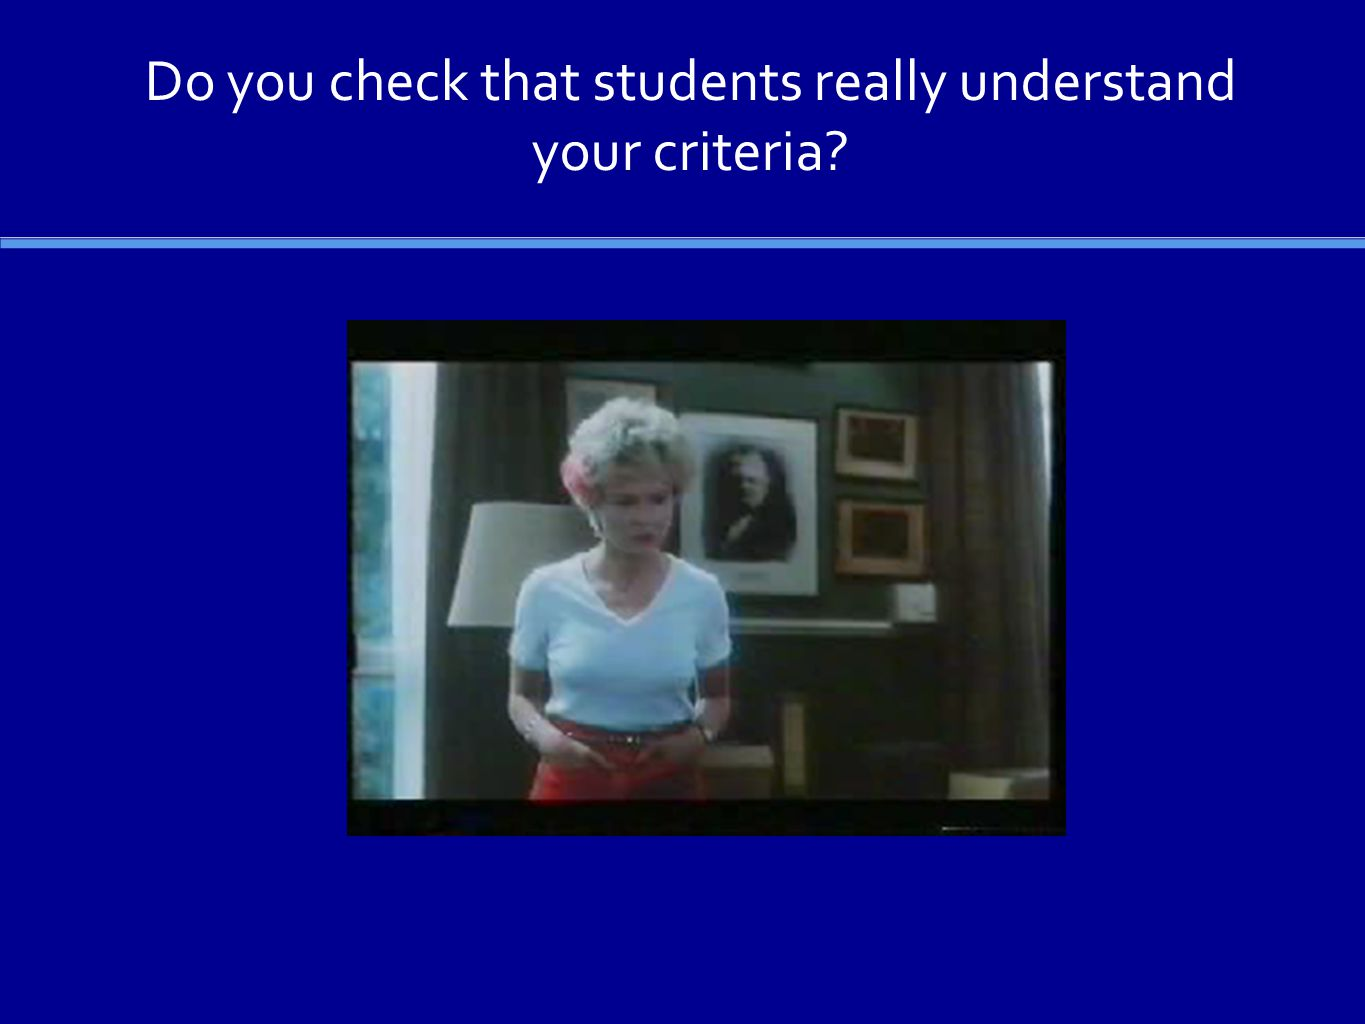 Do you check that students really understand your criteria?